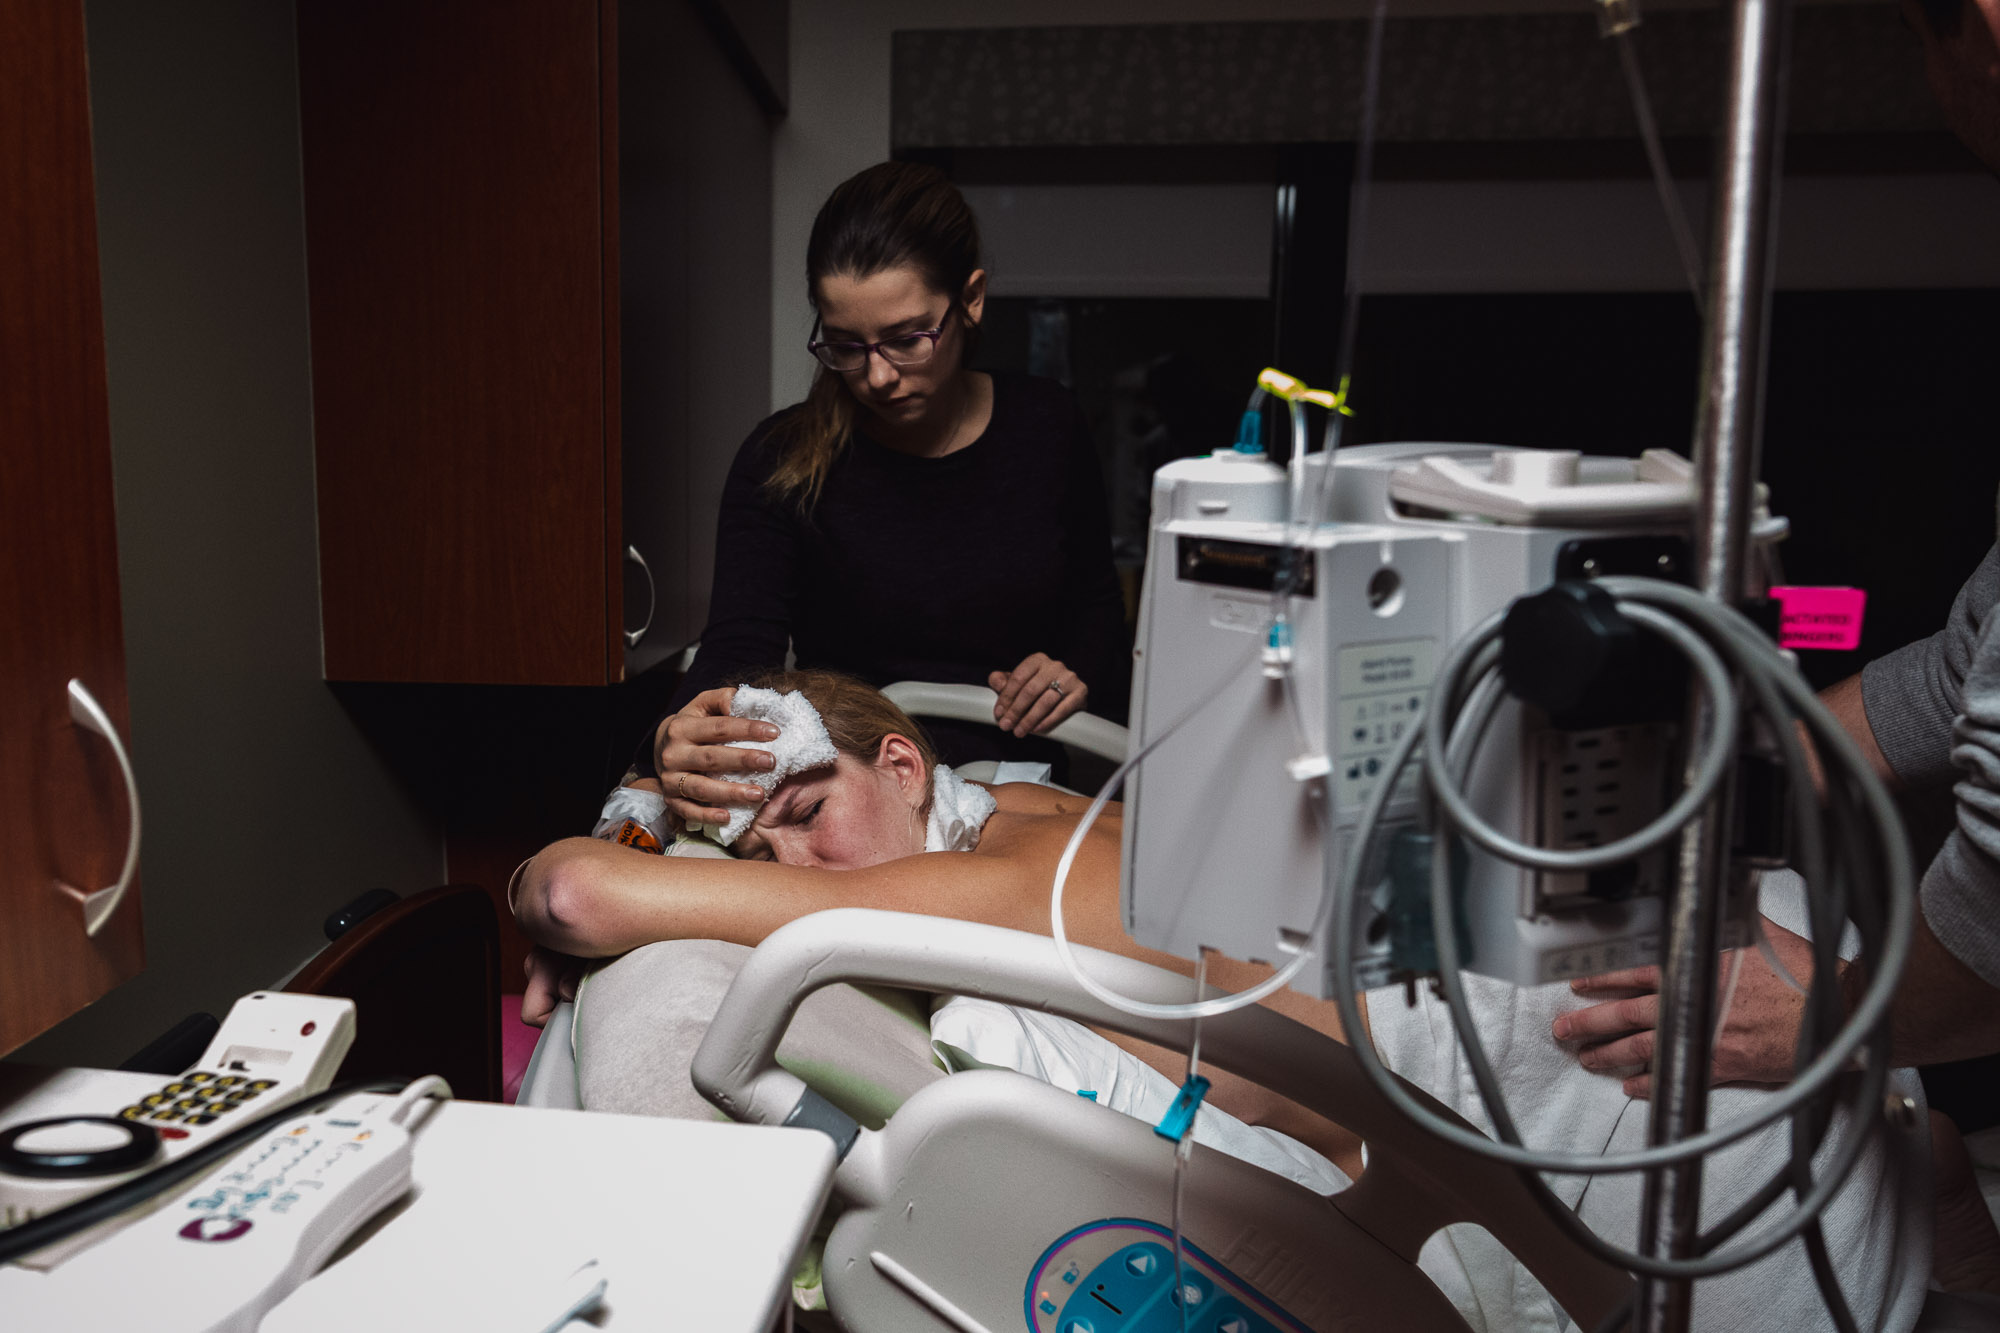 Her midwife's assistant Tristany Beckwidth was there for the birth.